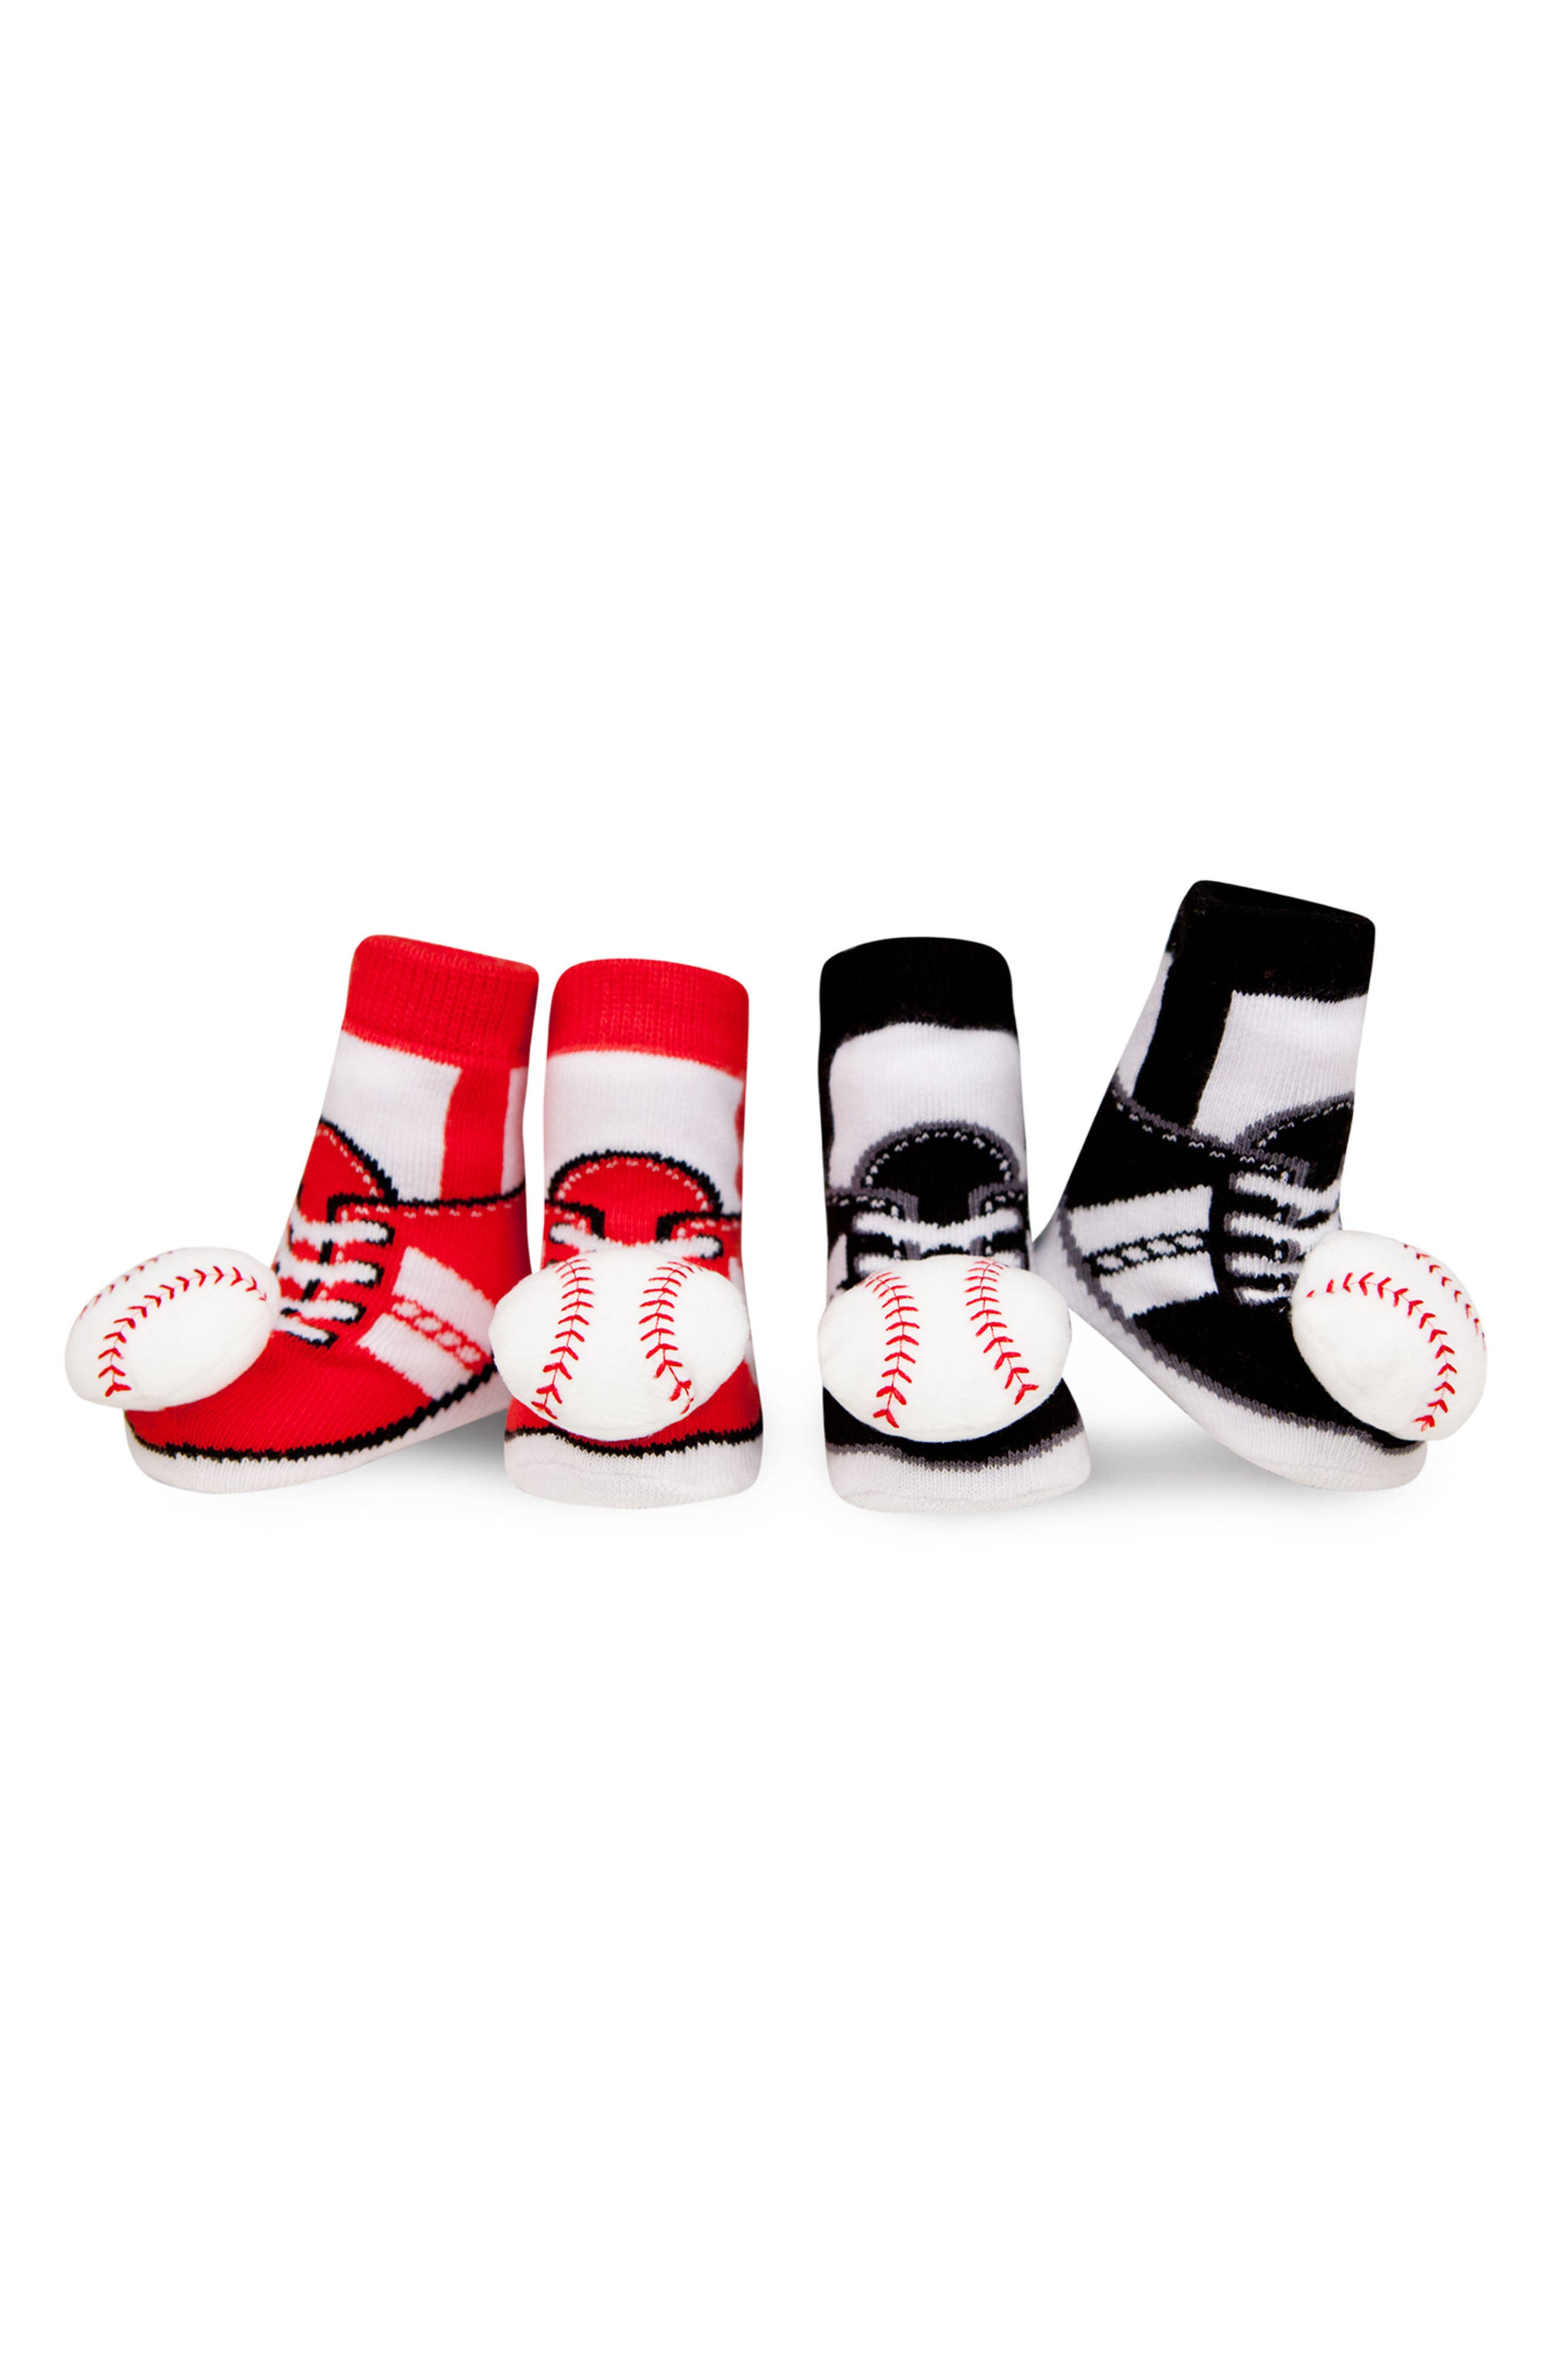 2-Pack Sport Rattle Socks,                             Main thumbnail 1, color,                             601